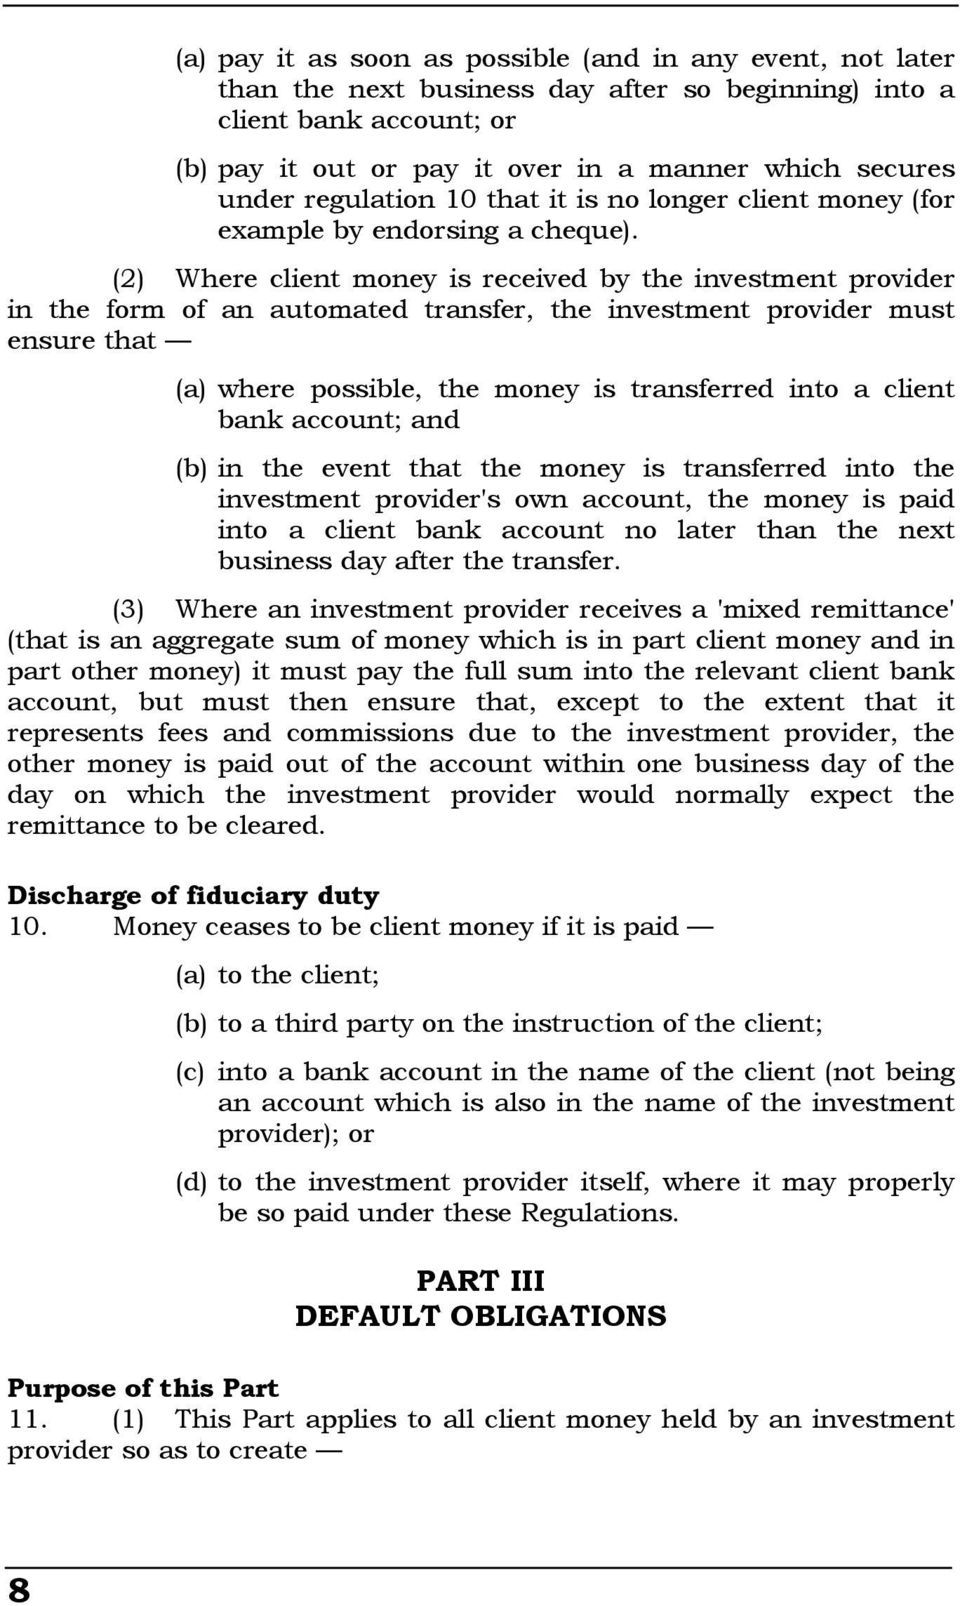 (2) Where client money is received by the investment provider in the form of an automated transfer, the investment provider must ensure that (a) where possible, the money is transferred into a client